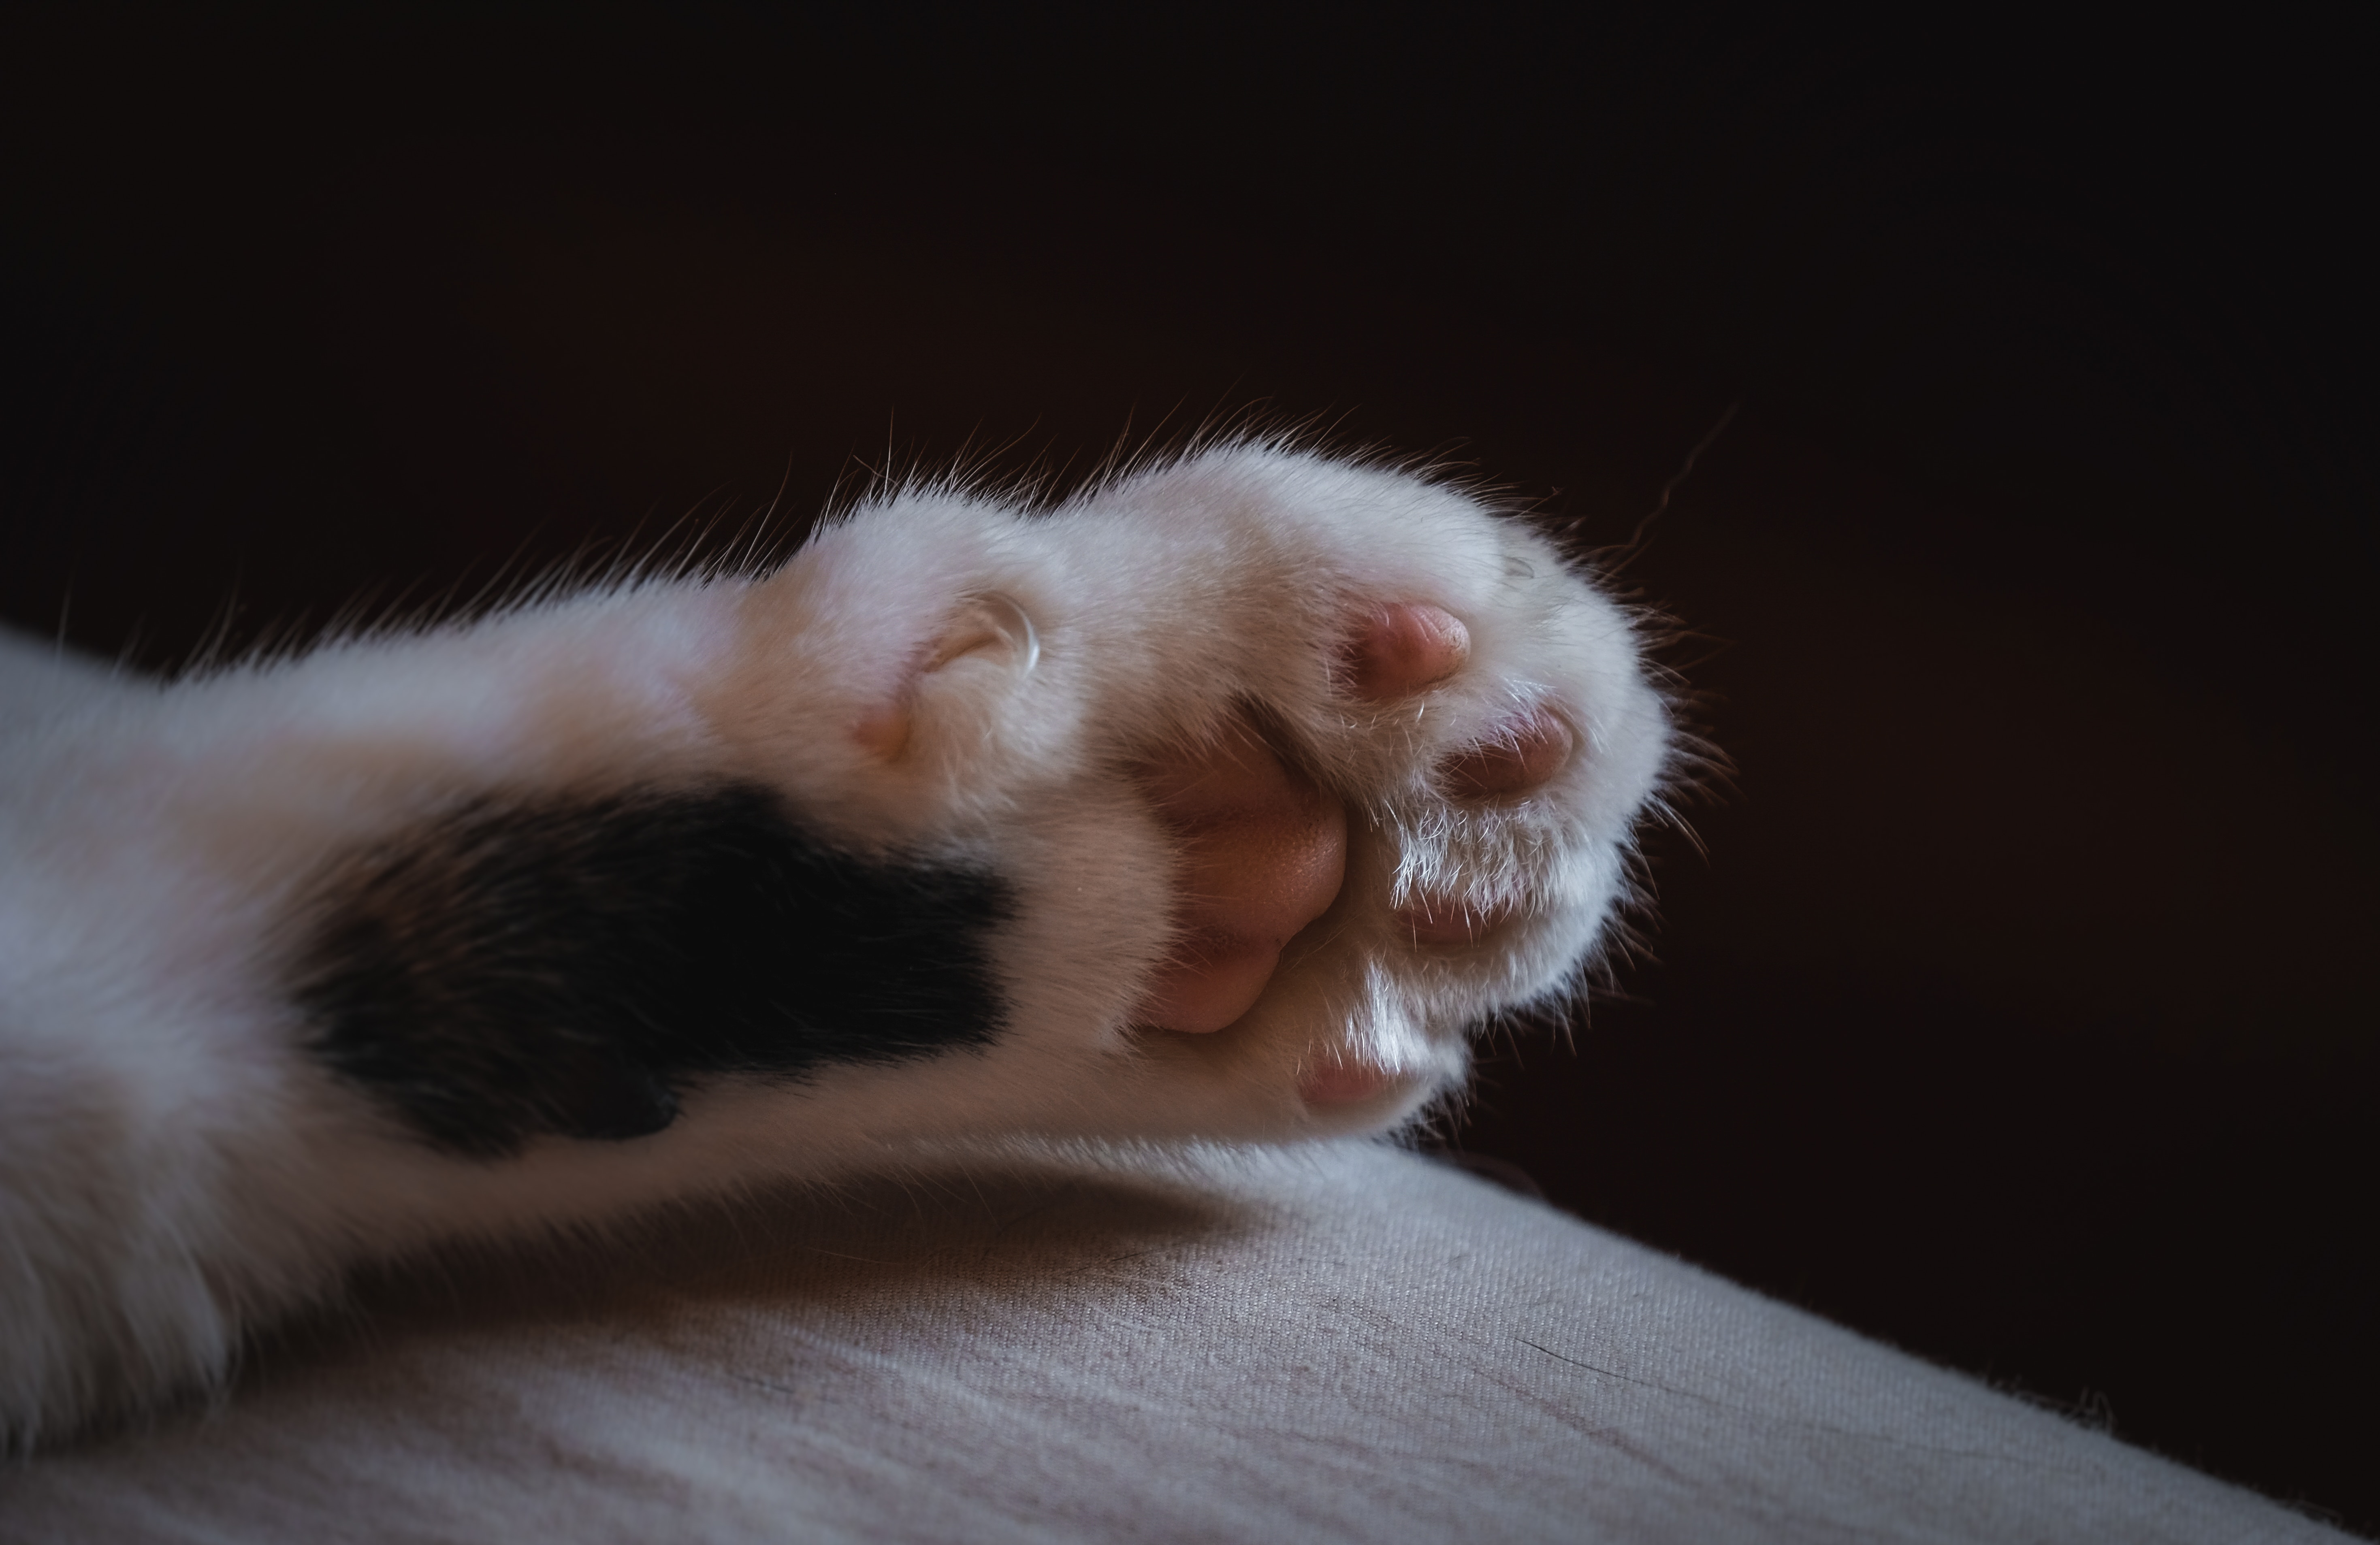 61172 Screensavers and Wallpapers Wool for phone. Download Animals, Cat, Wool, Claws, Paw pictures for free